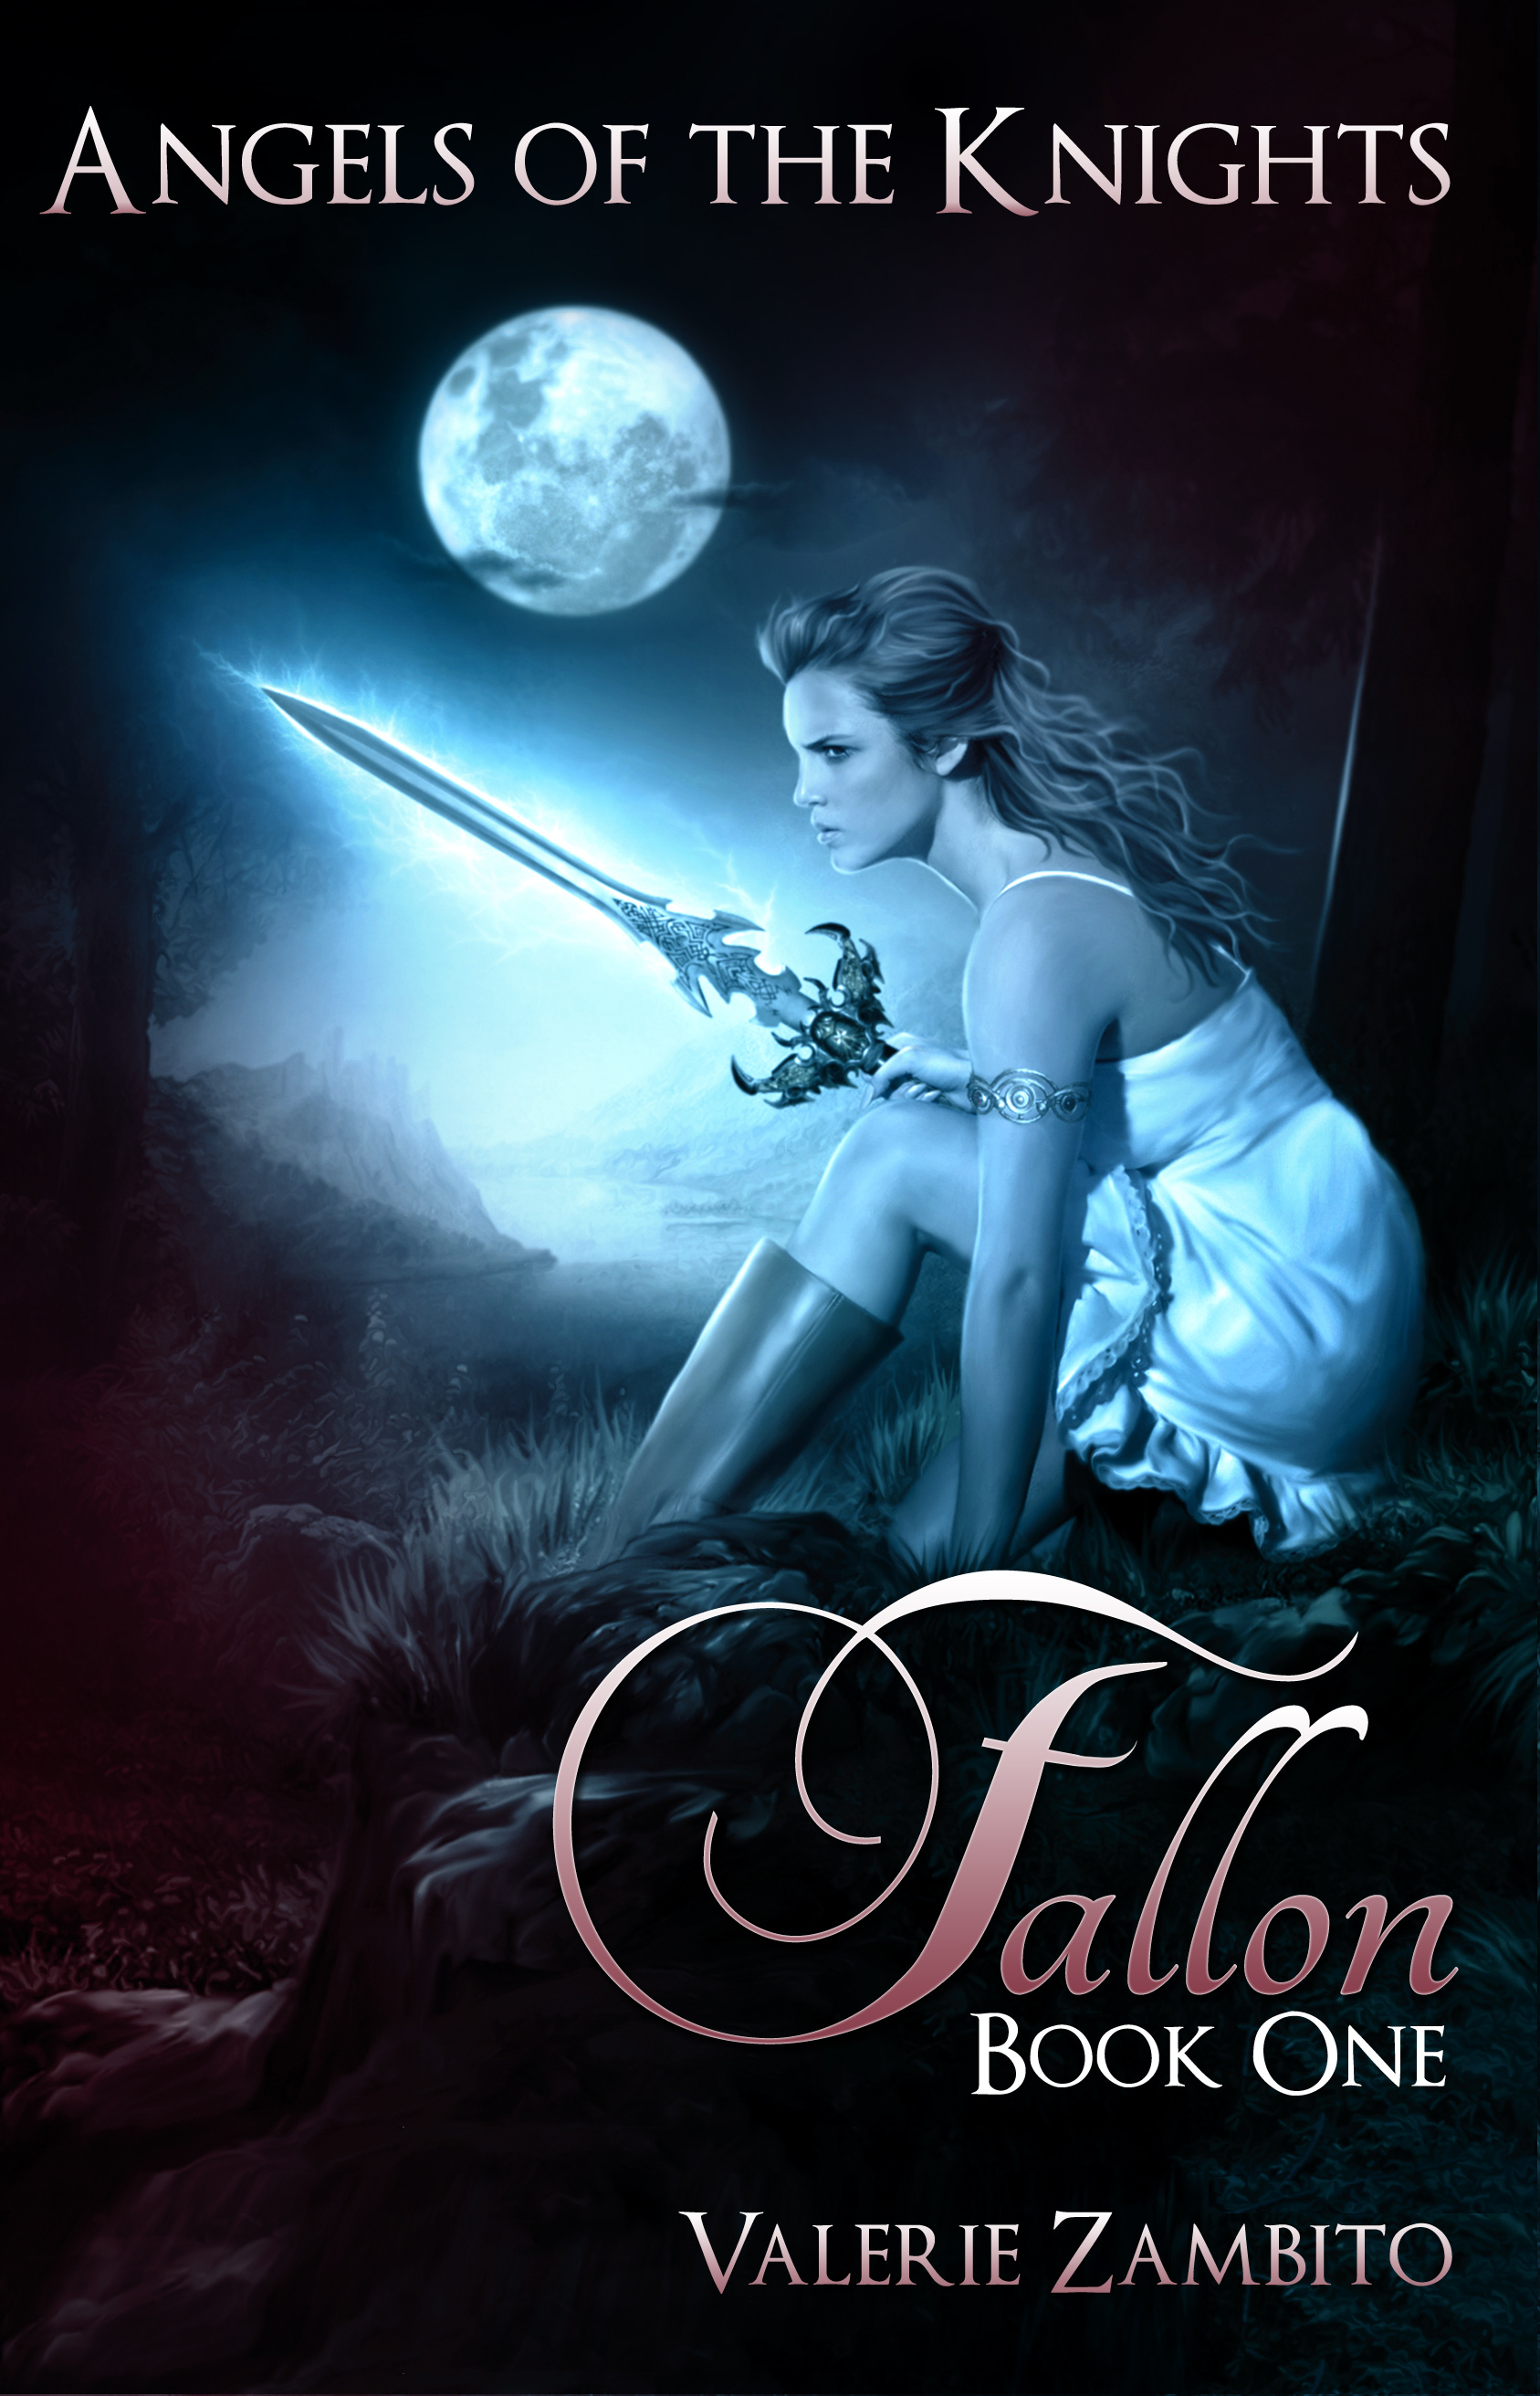 Angels of the Knights - Fallon (Book One) (sst-xciv)